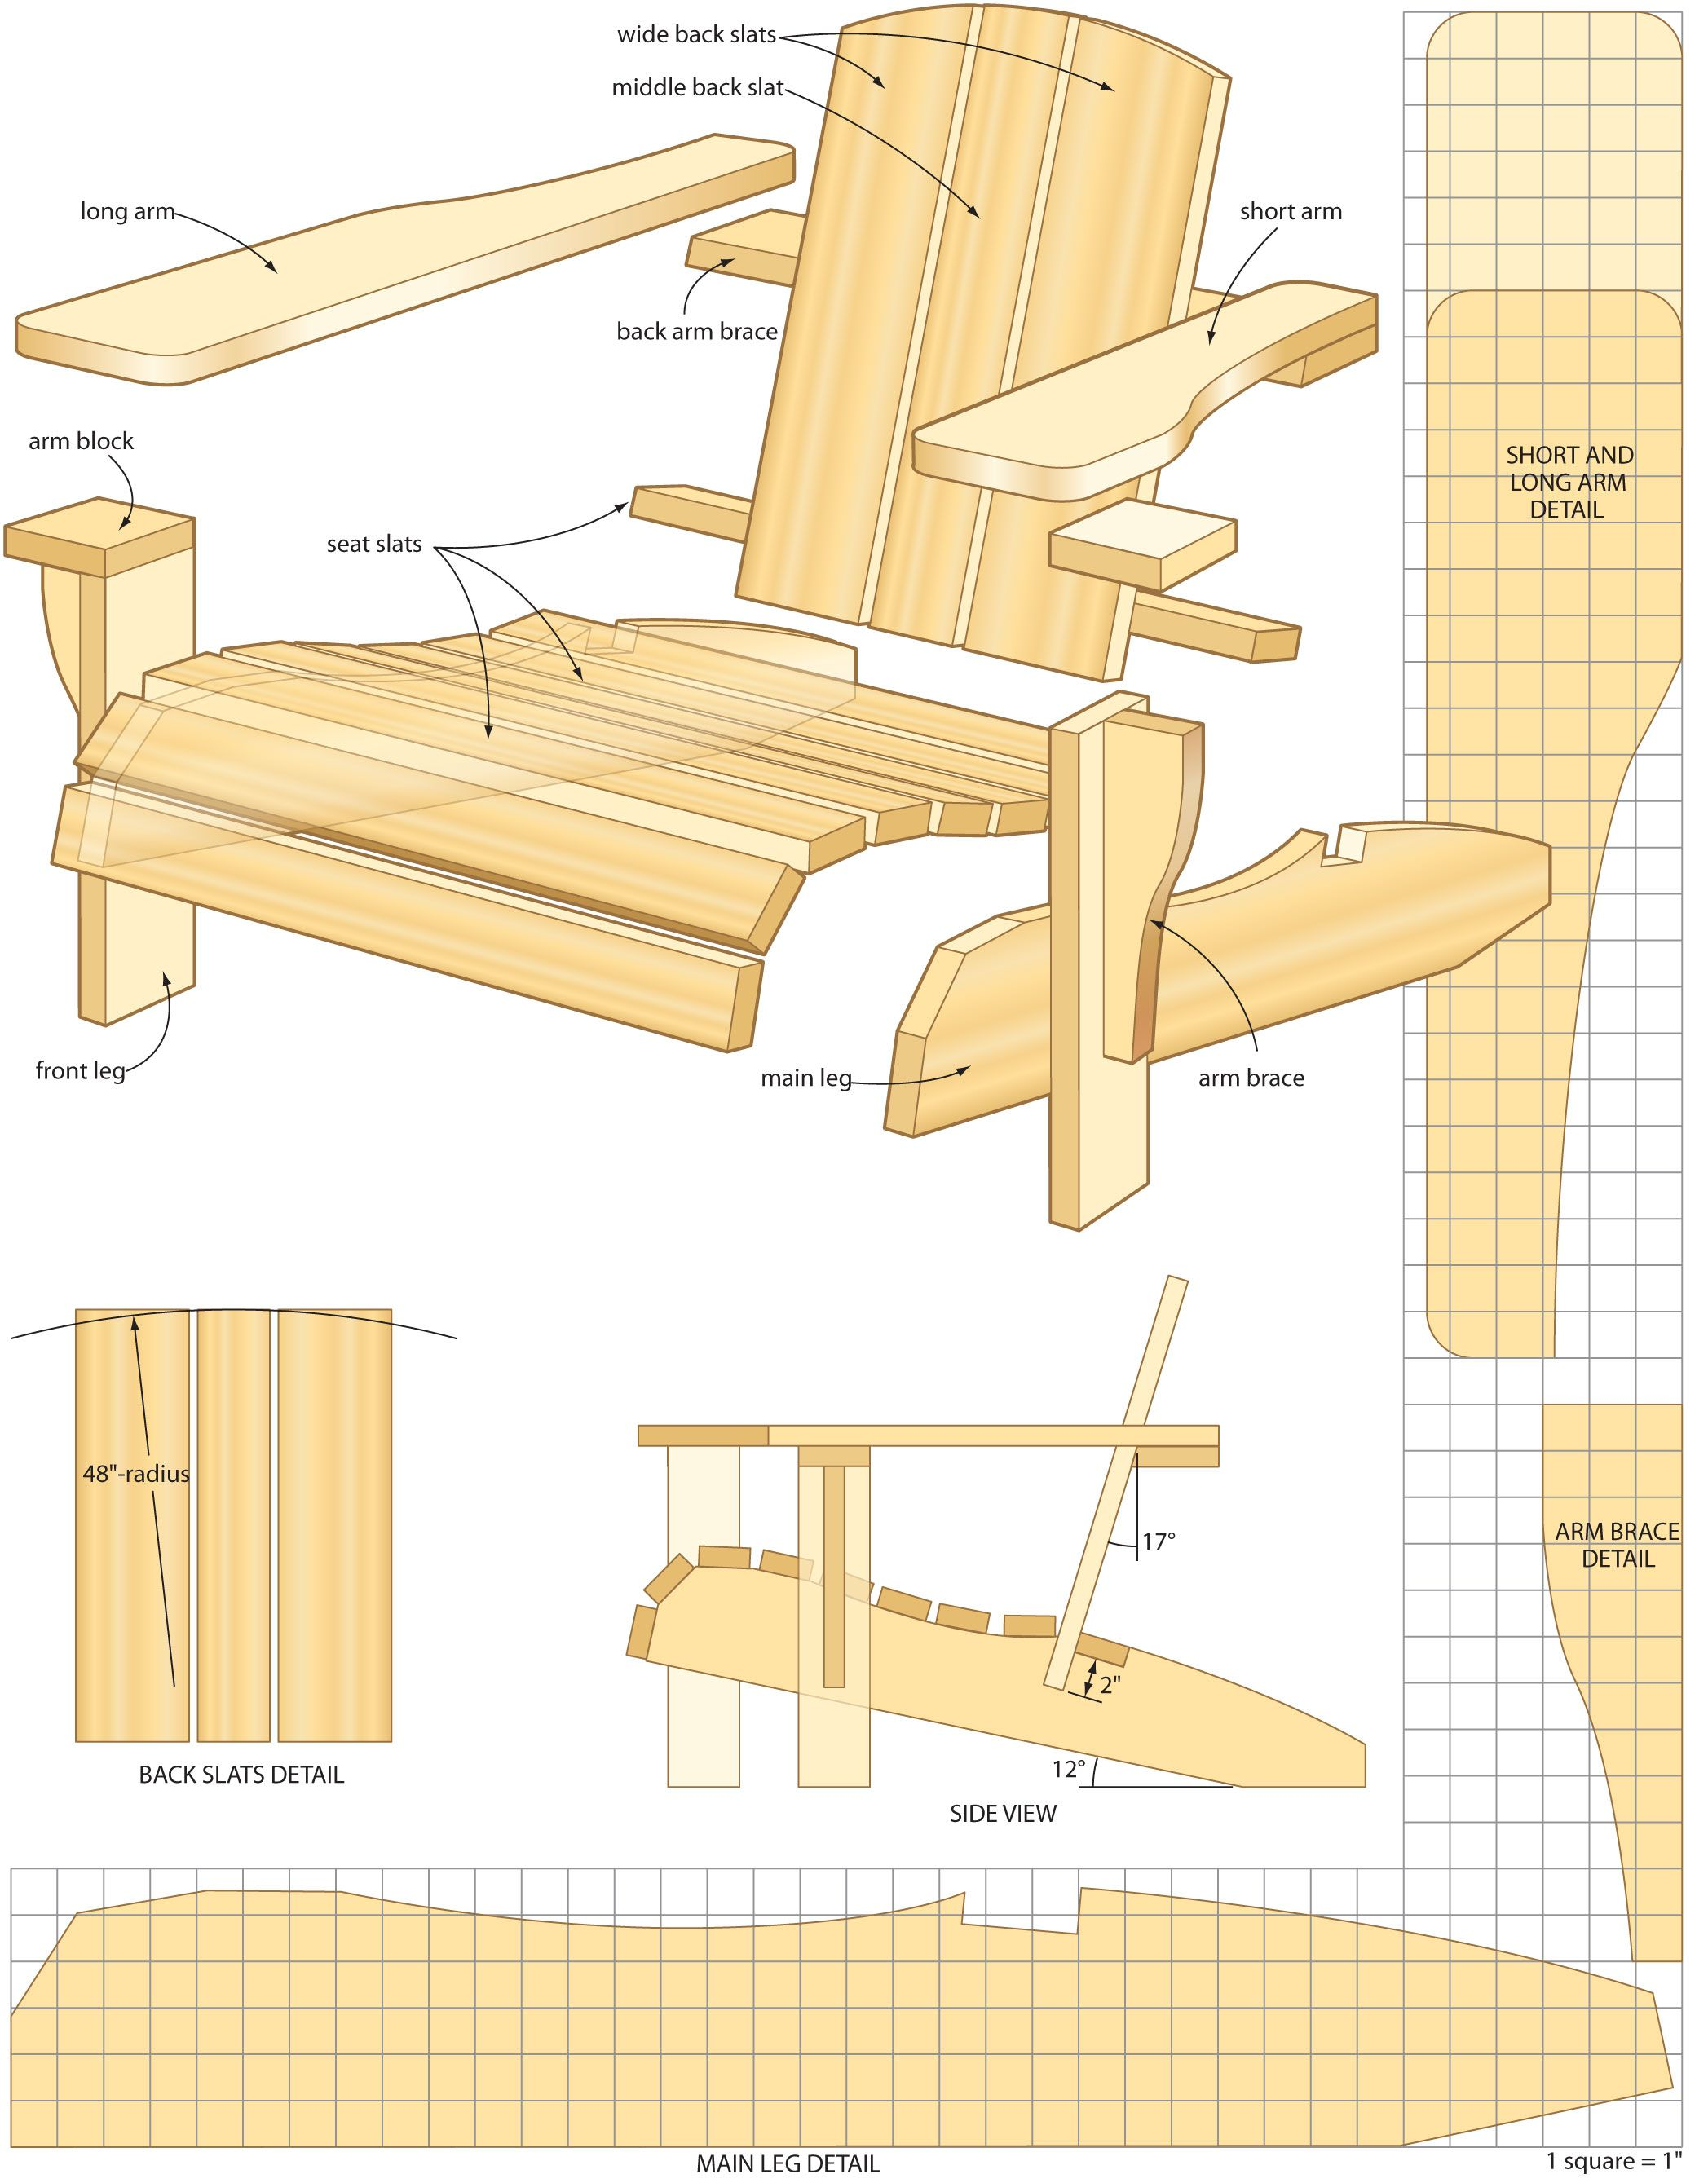 17 best images about glider chairs on pinterest | outdoor benches, Hause und Garten